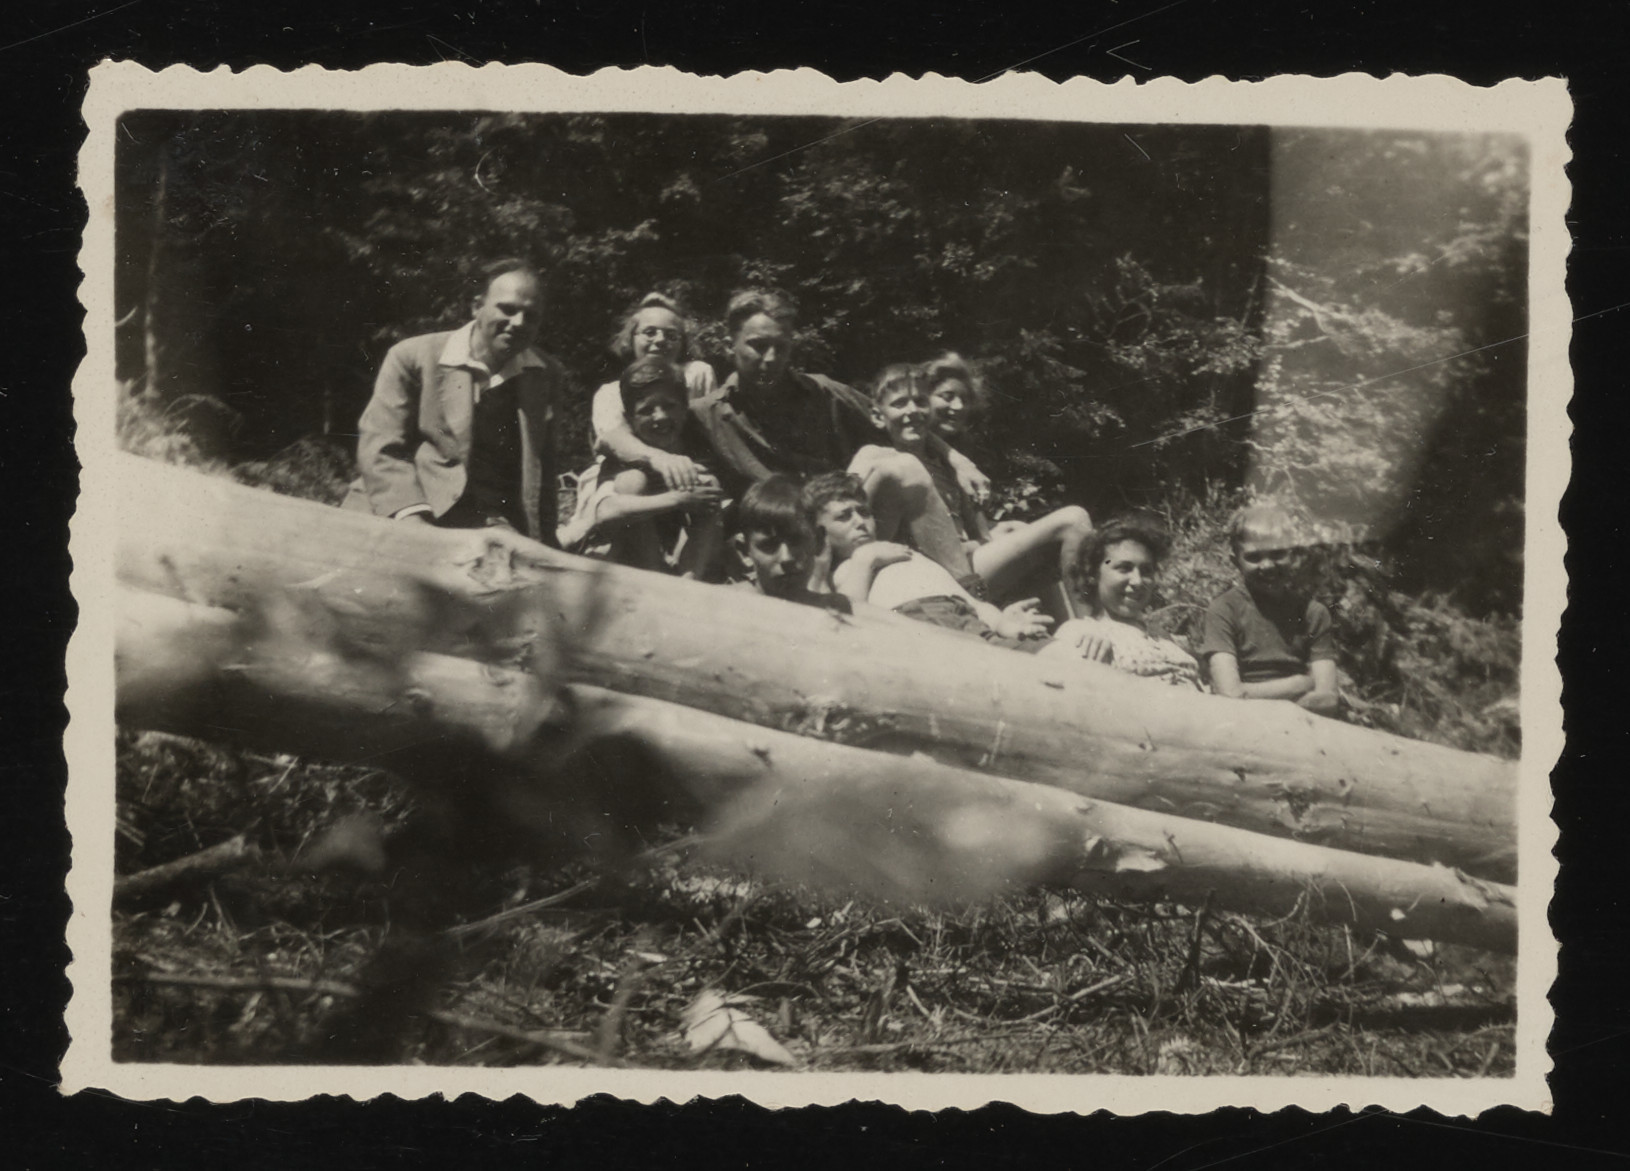 Jewish youth who are living in hiding in Le Chambon sit next to a fallen tree.